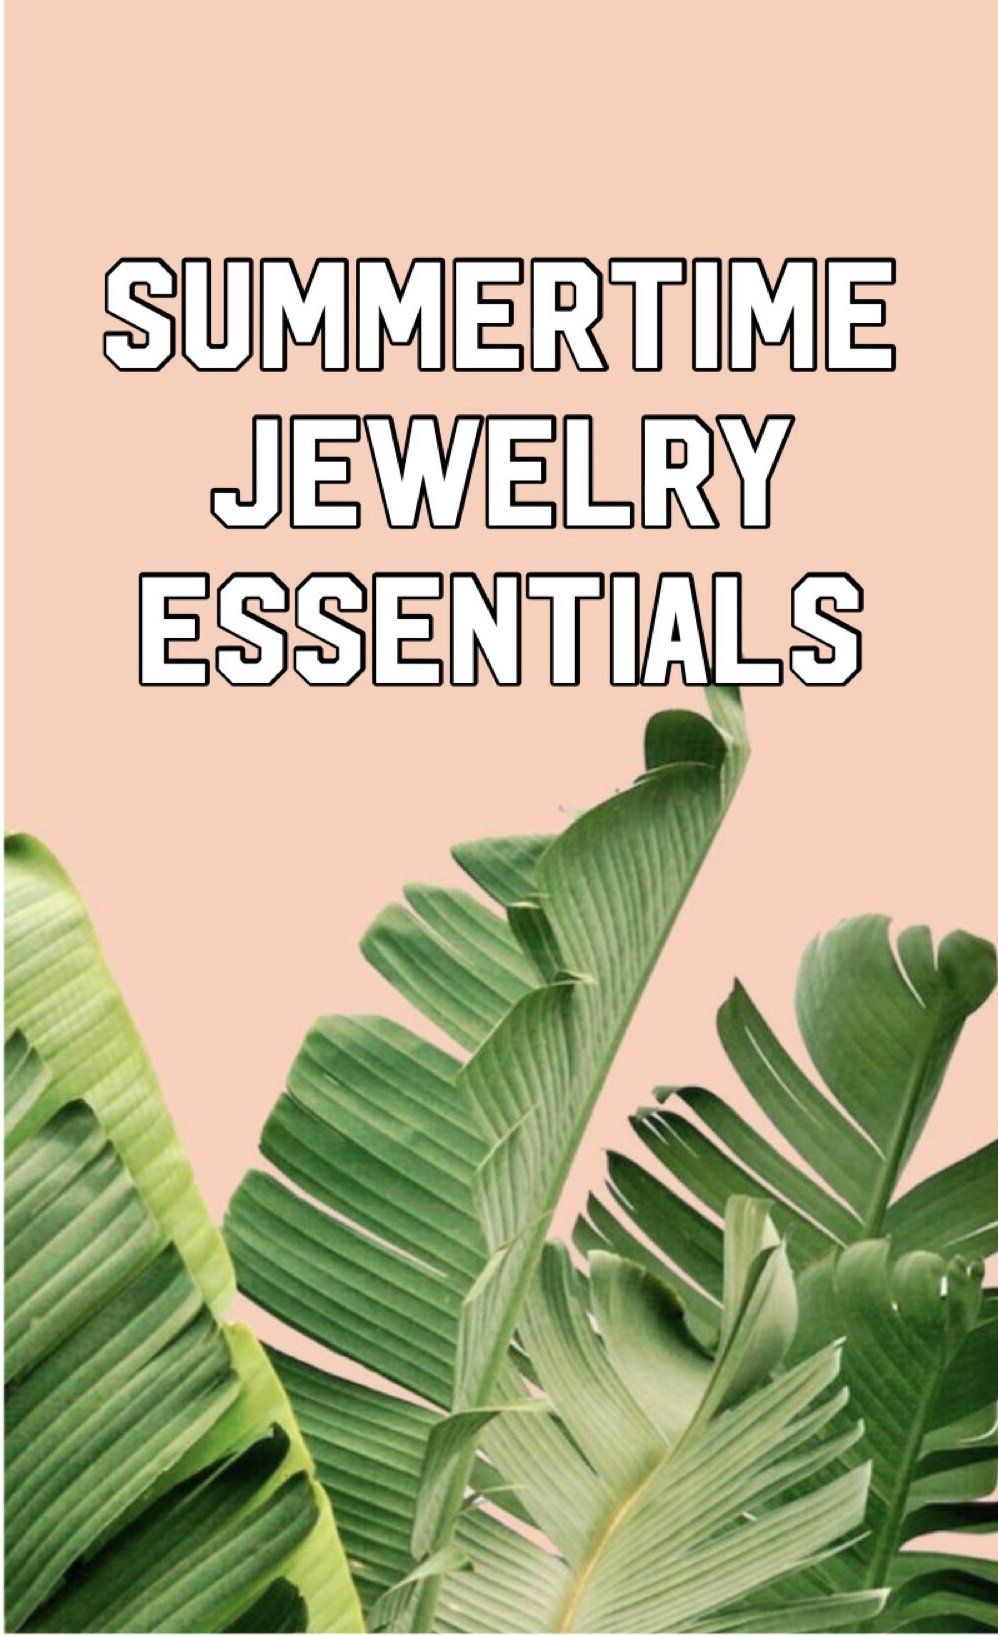 My Summertime Jewelry Essentials